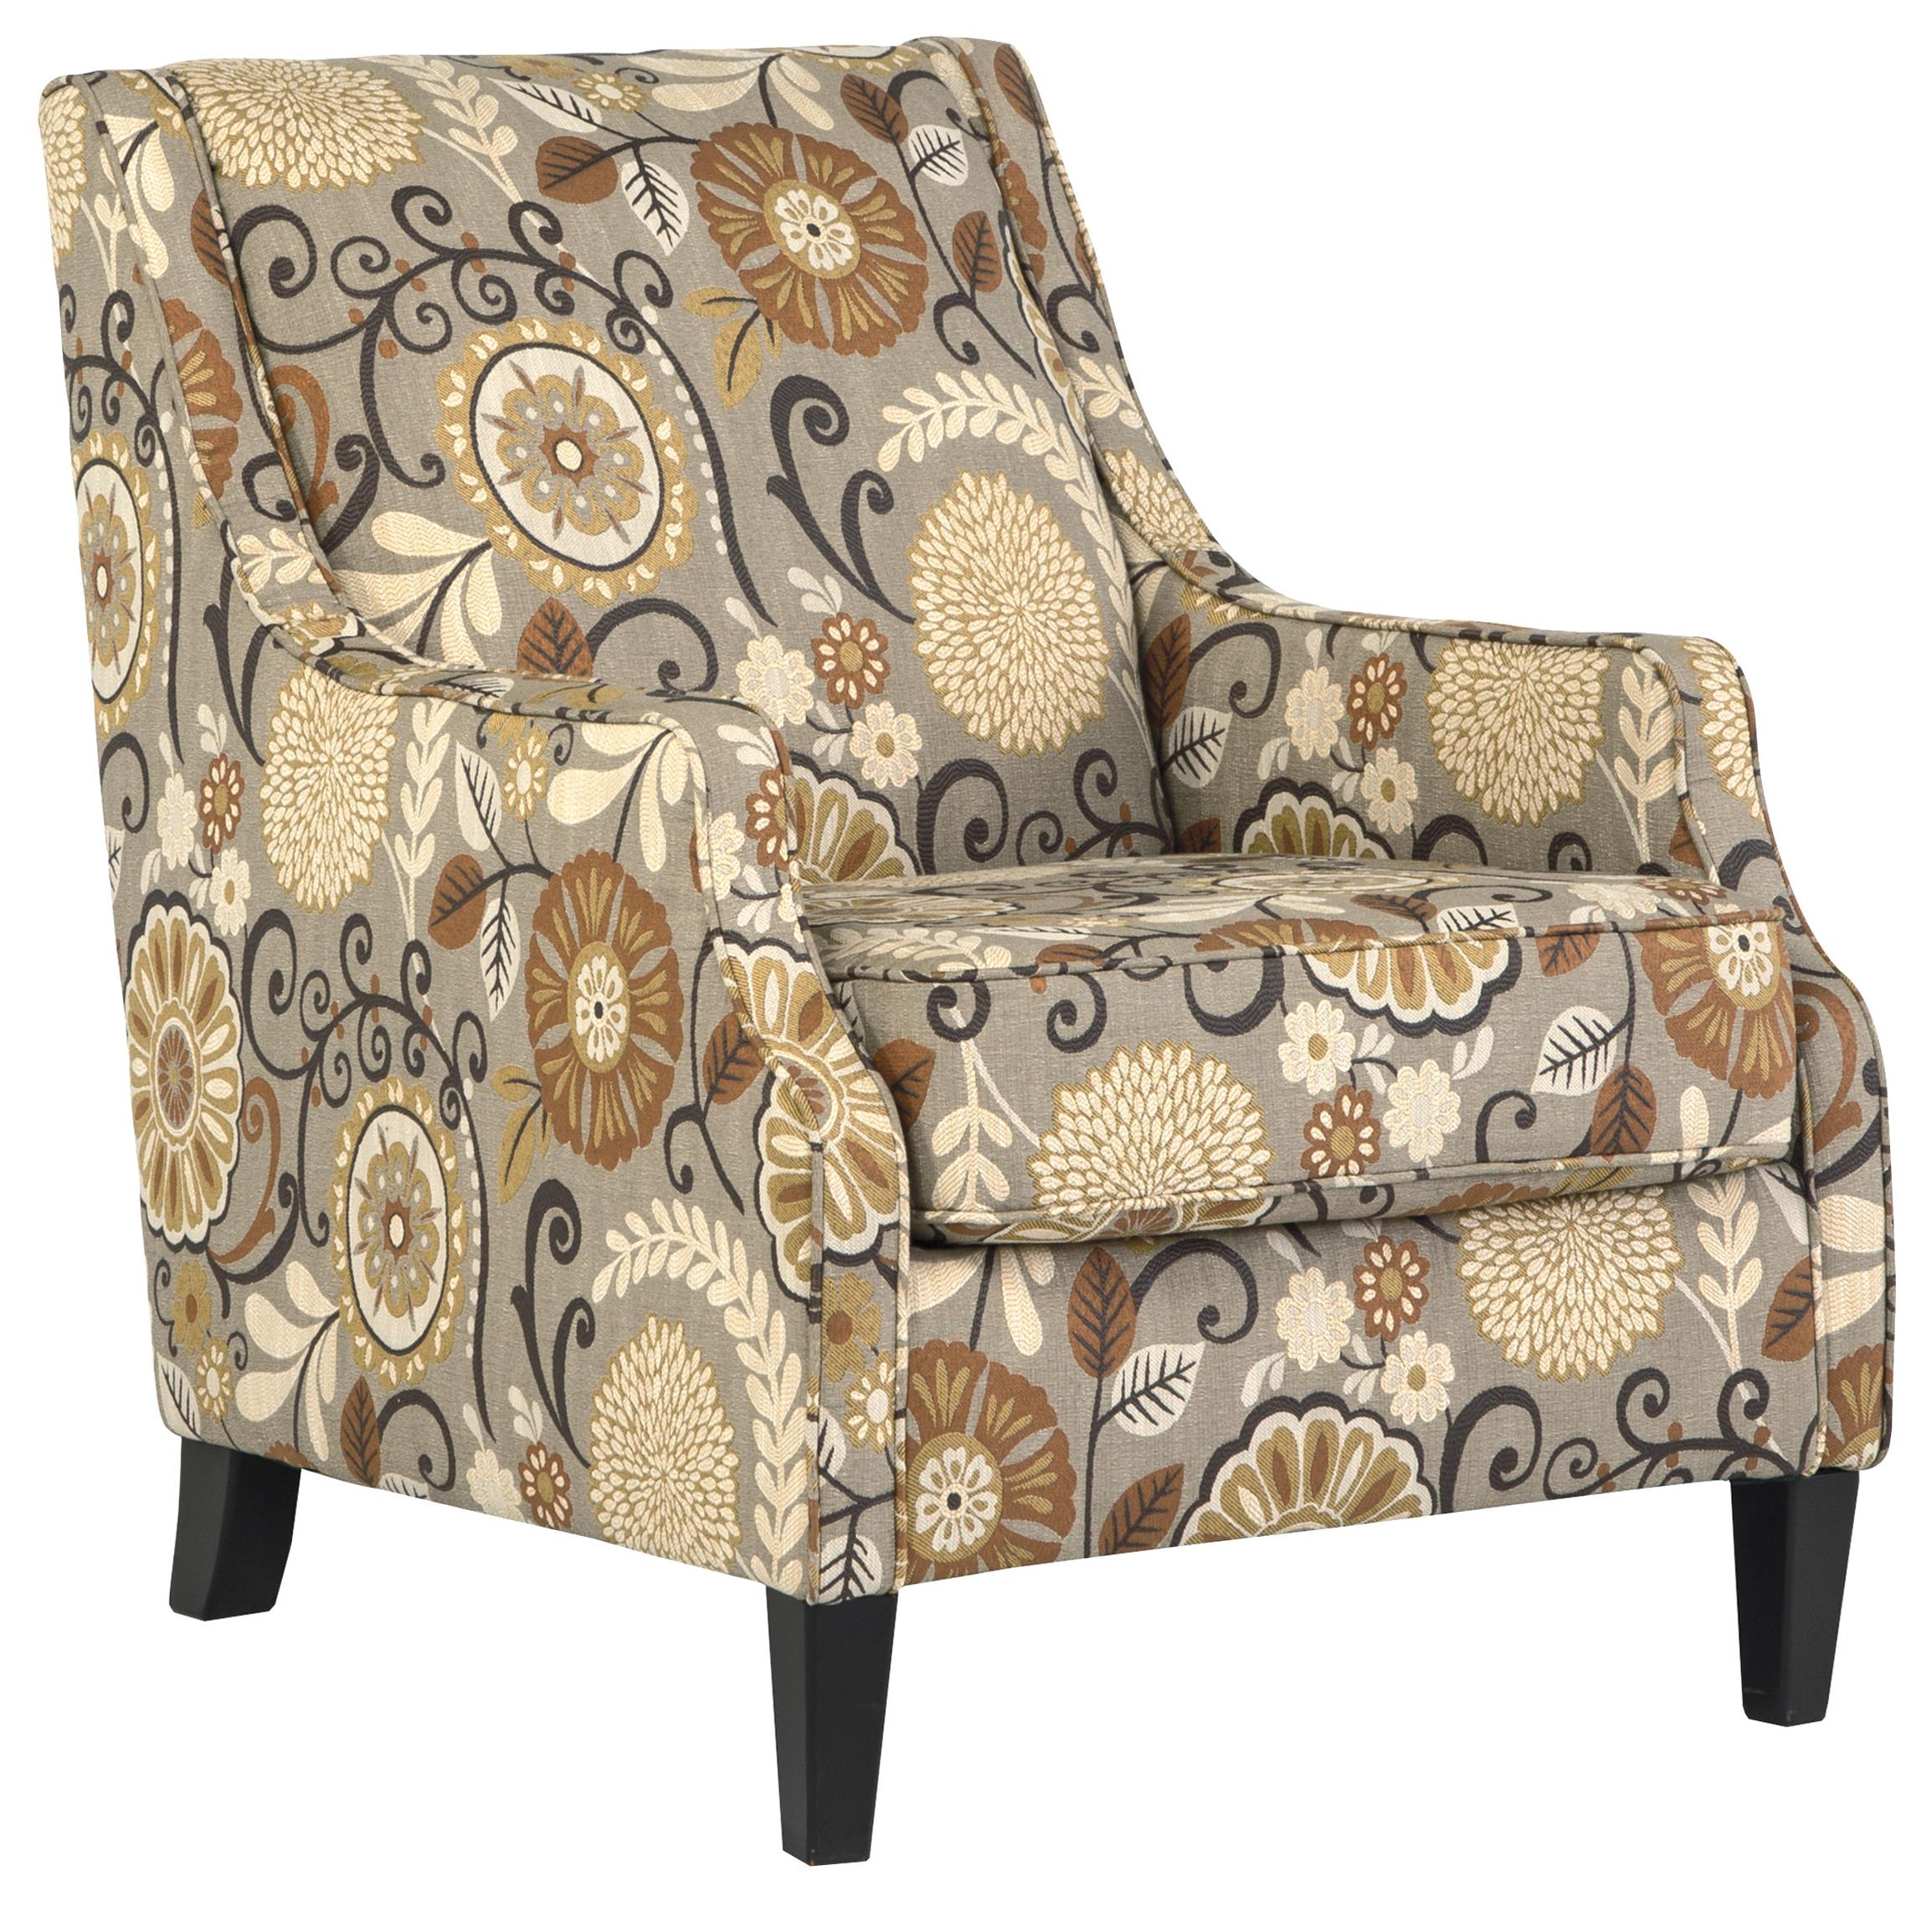 Benchcraft Tailya Accent Chair - Item Number: 4770021